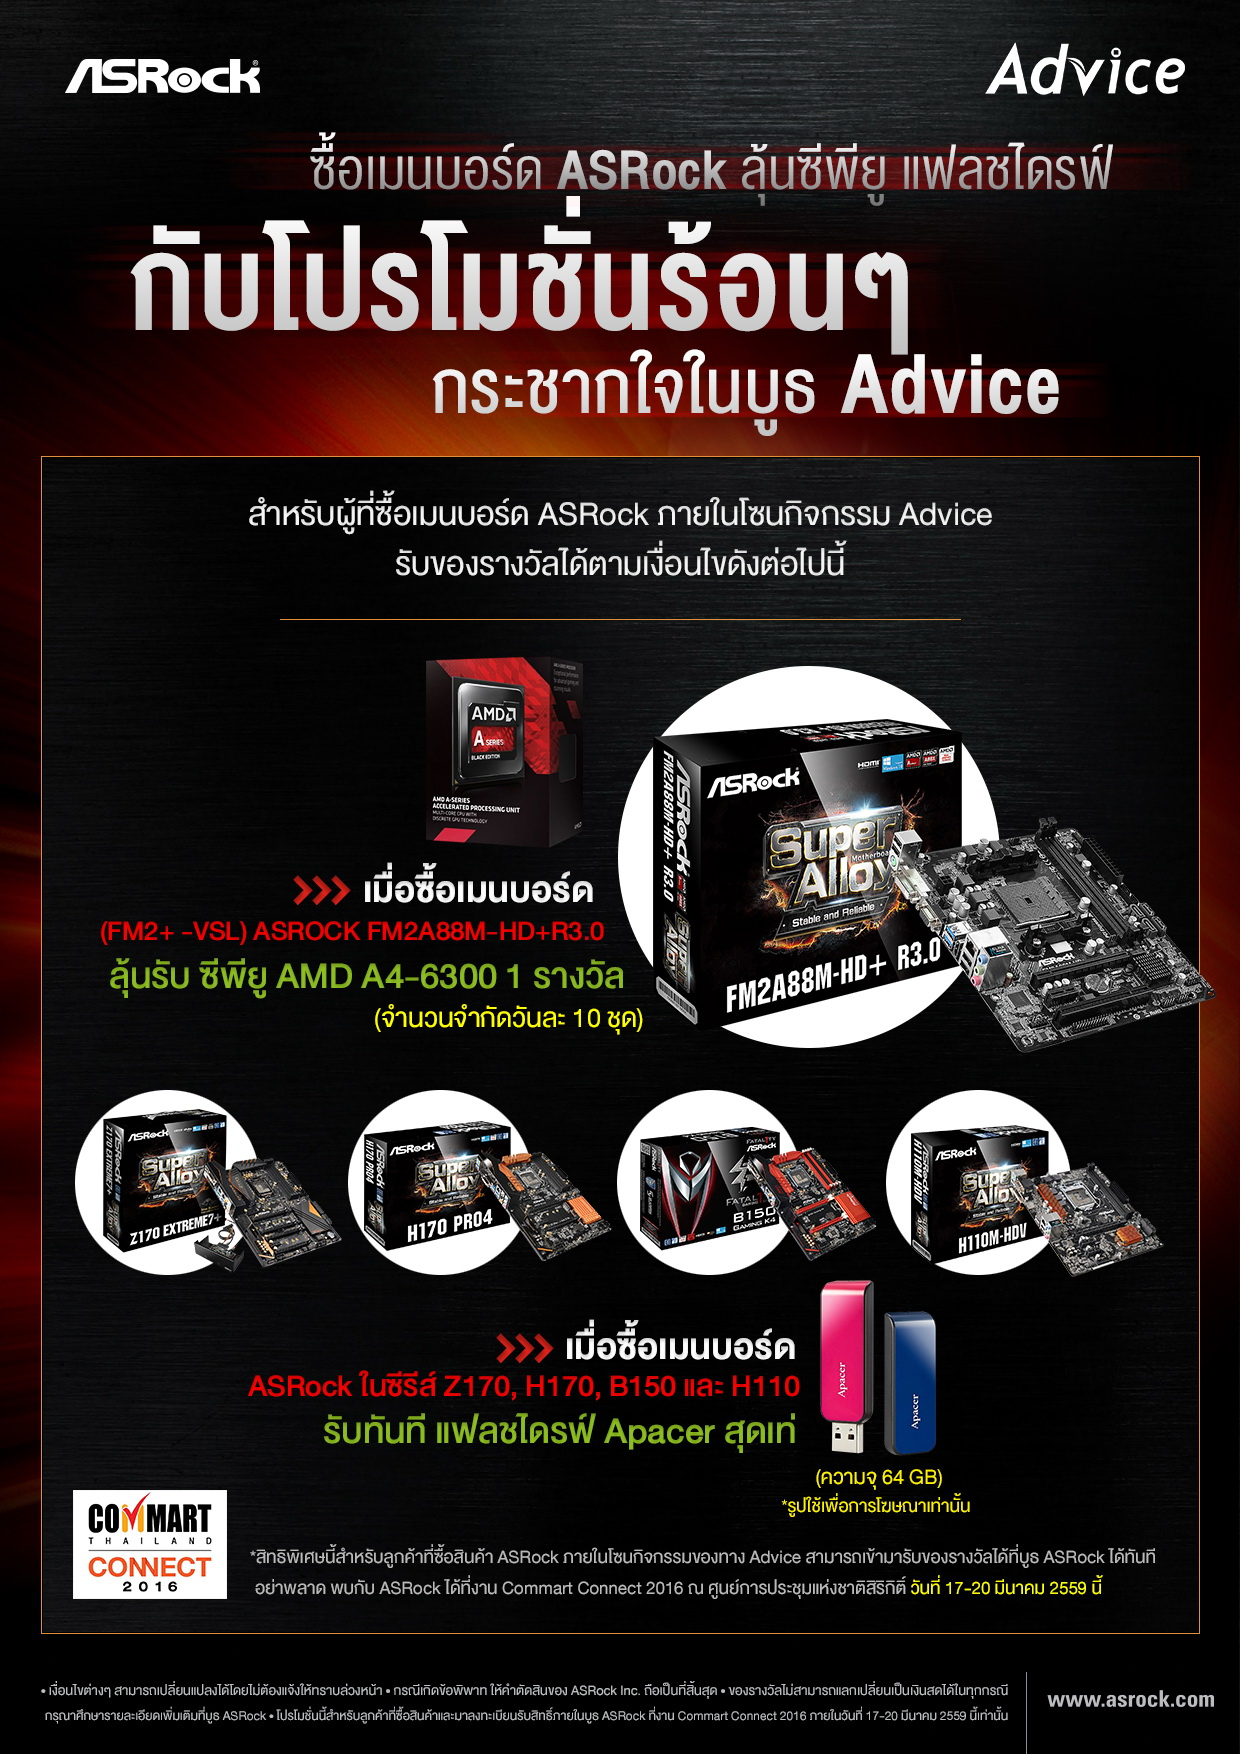 ASRock-Advice-promotion commart 2016